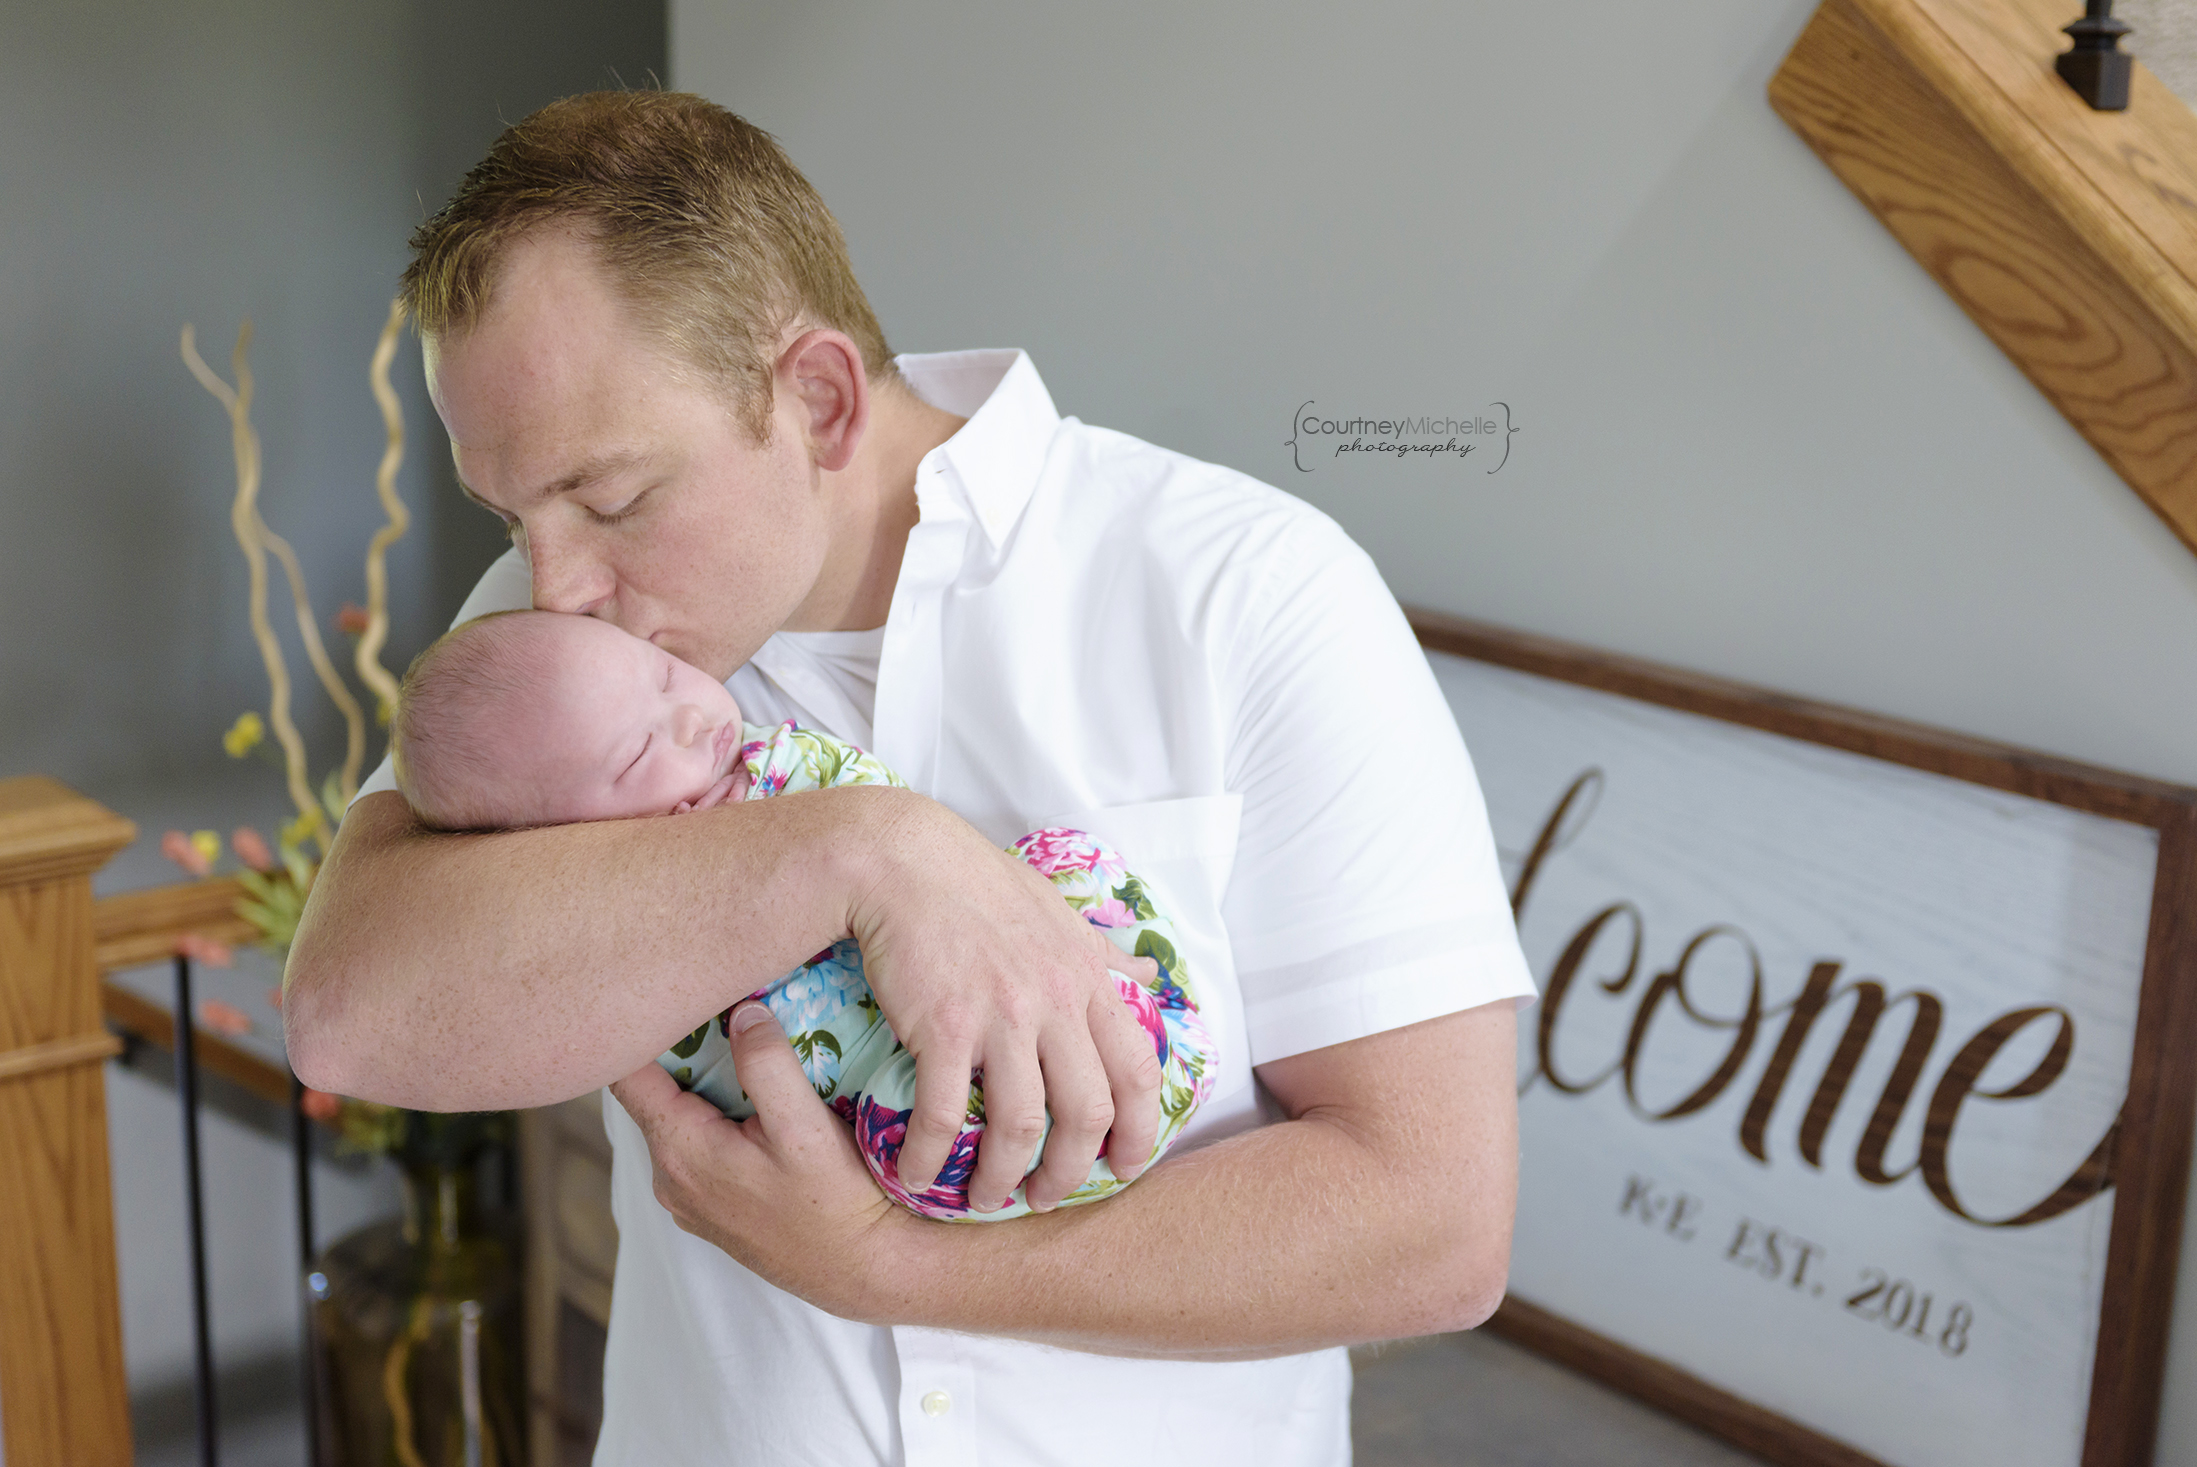 chicago-newborn-photographers-courtney-laper-lifestyle-session-dad-kissing-baby-girl-COPYRIGHTCMP-Camille20190705-2753-52.jpg